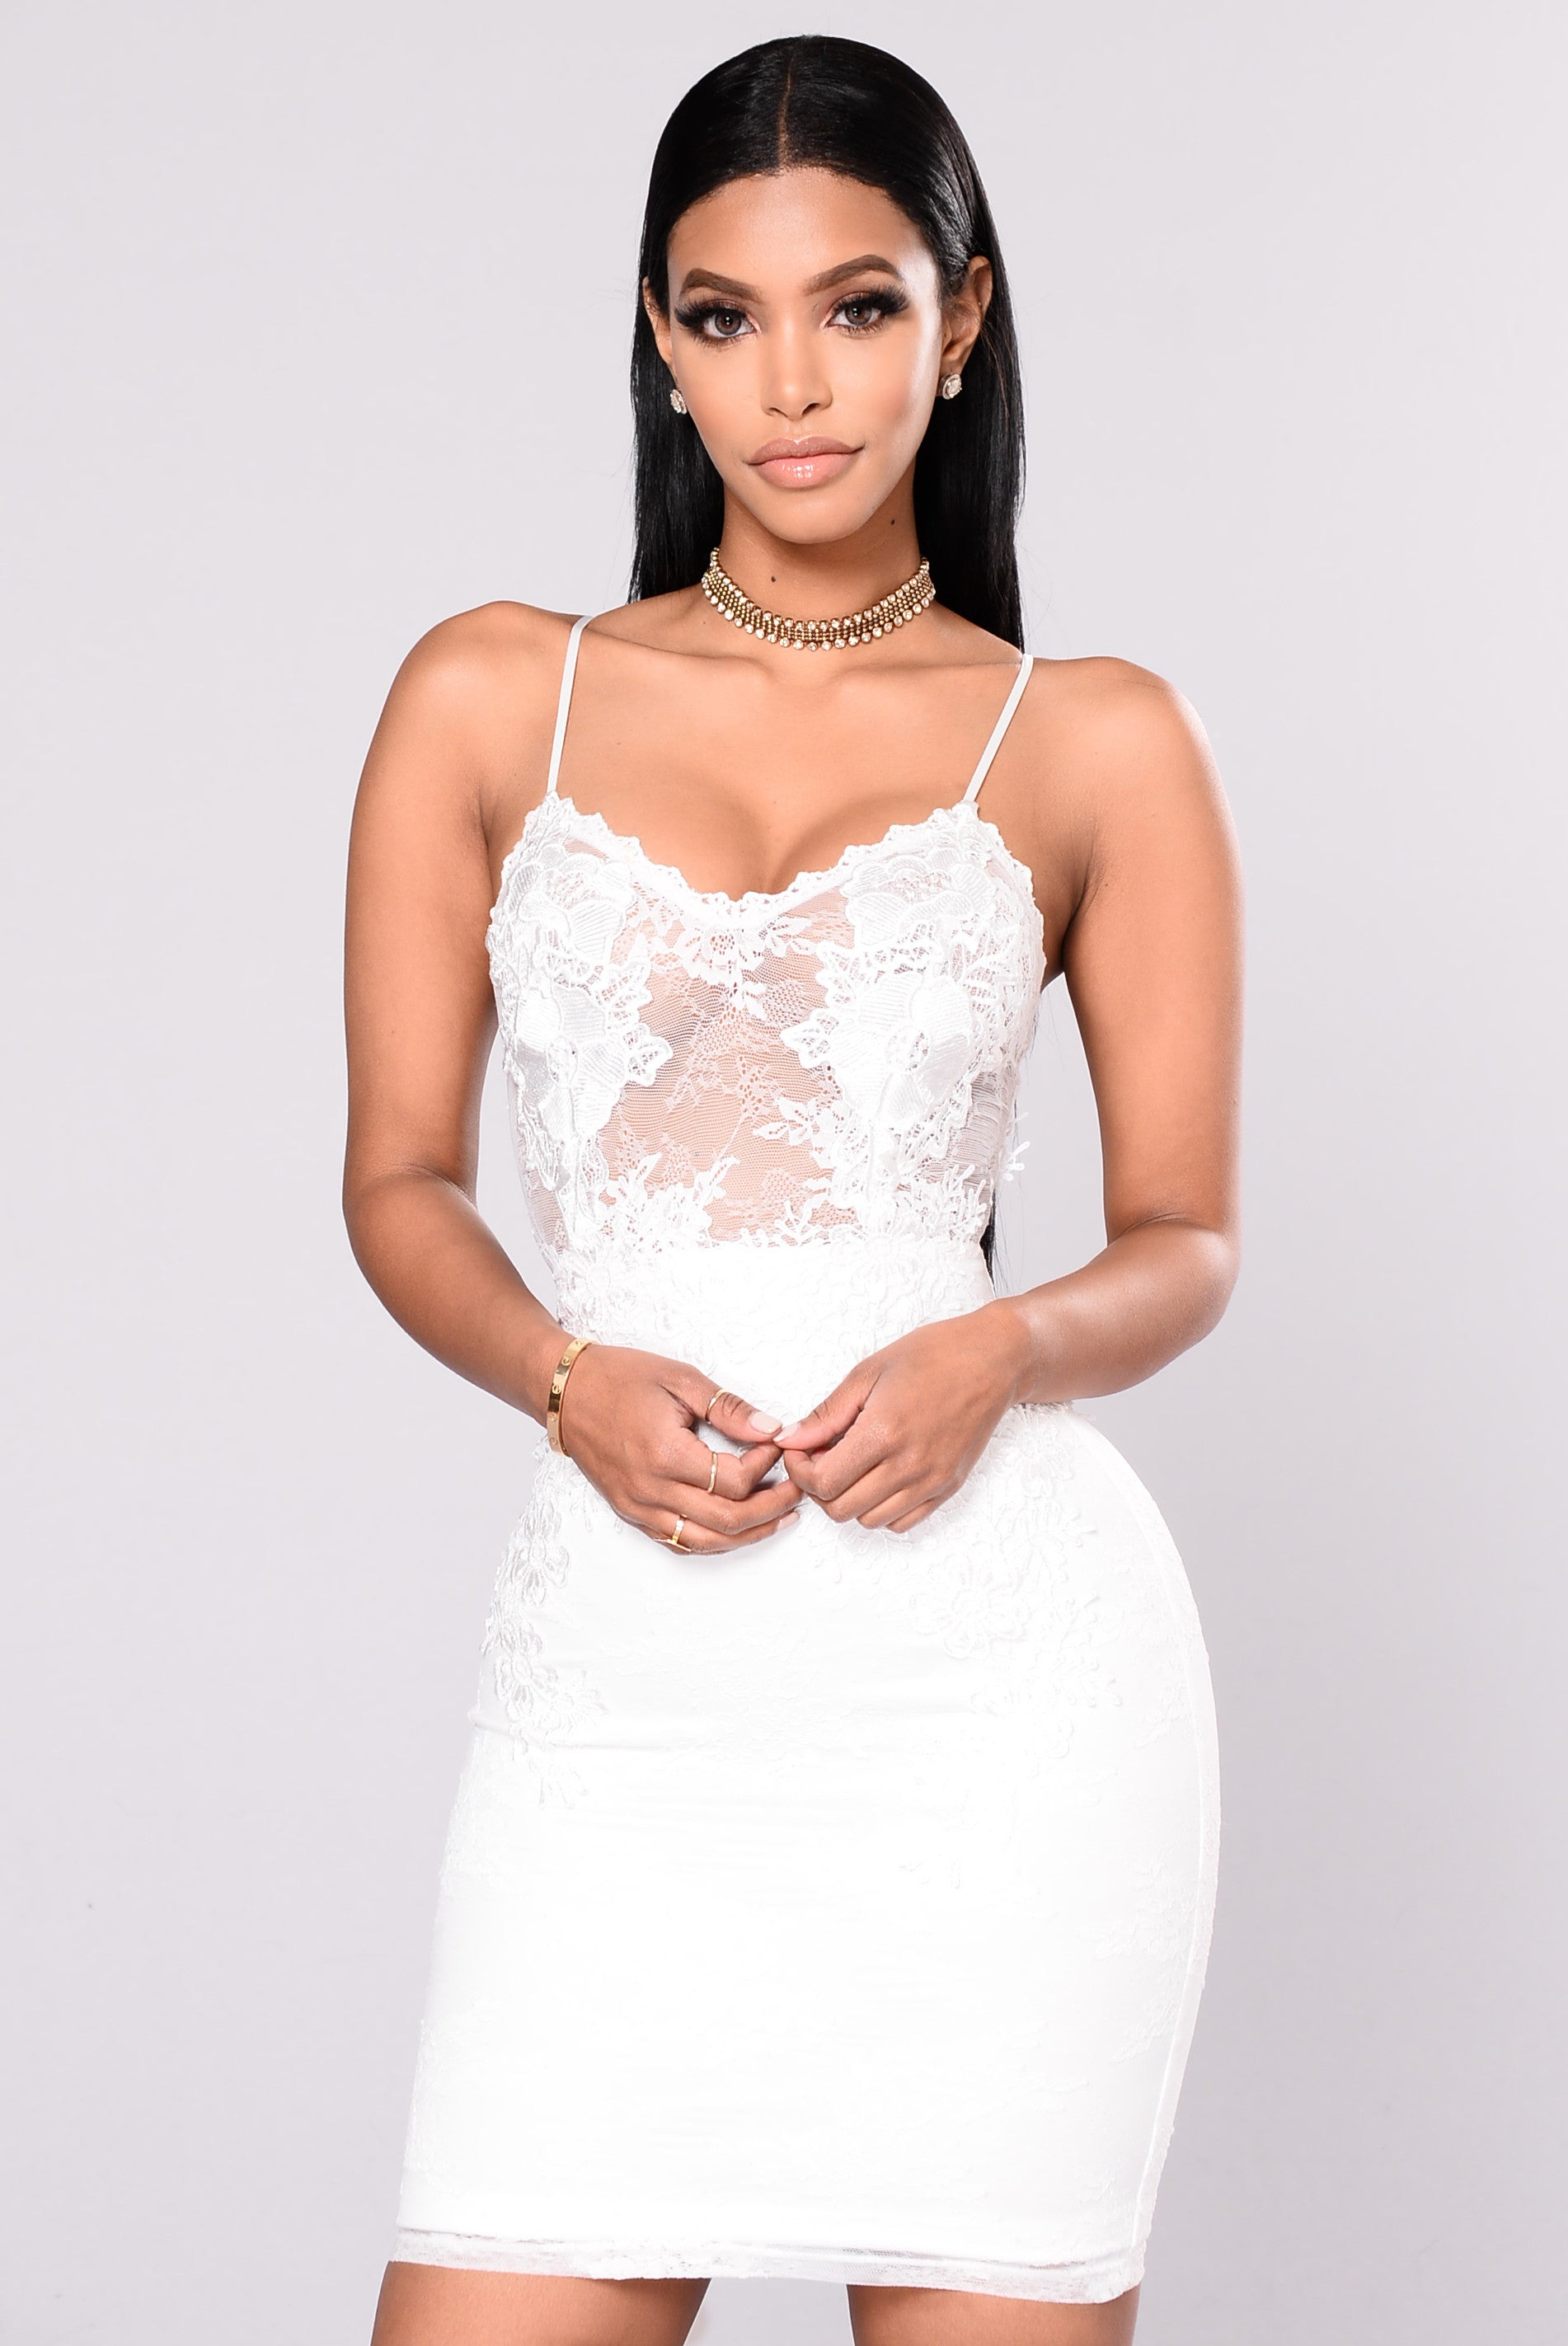 Shop our sexy Party Dresses to find style for your figure. Everyone knows that black or striped Party Dresses can be slimming while a sexy red or white dress can style your curves. If it is the perfect New Years Eve dress you desire or a stunning formal outfit then AMIClubwear has something for you.